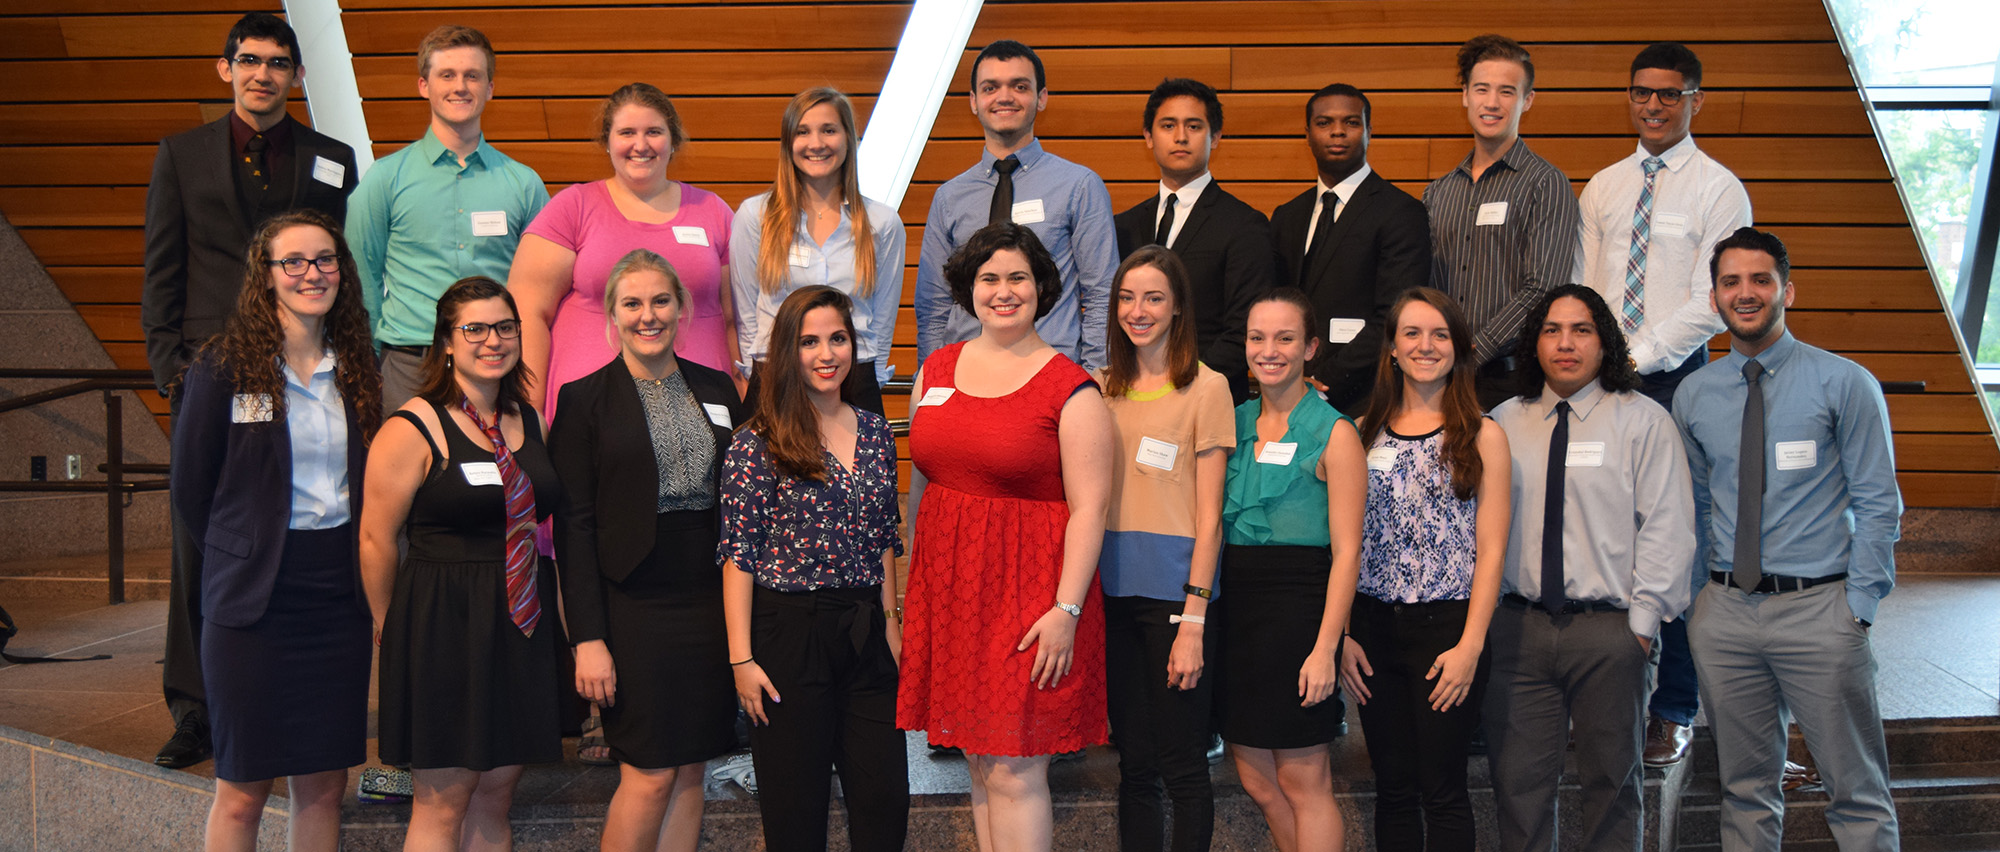 2016 Research Experience for Undergraduates Participants